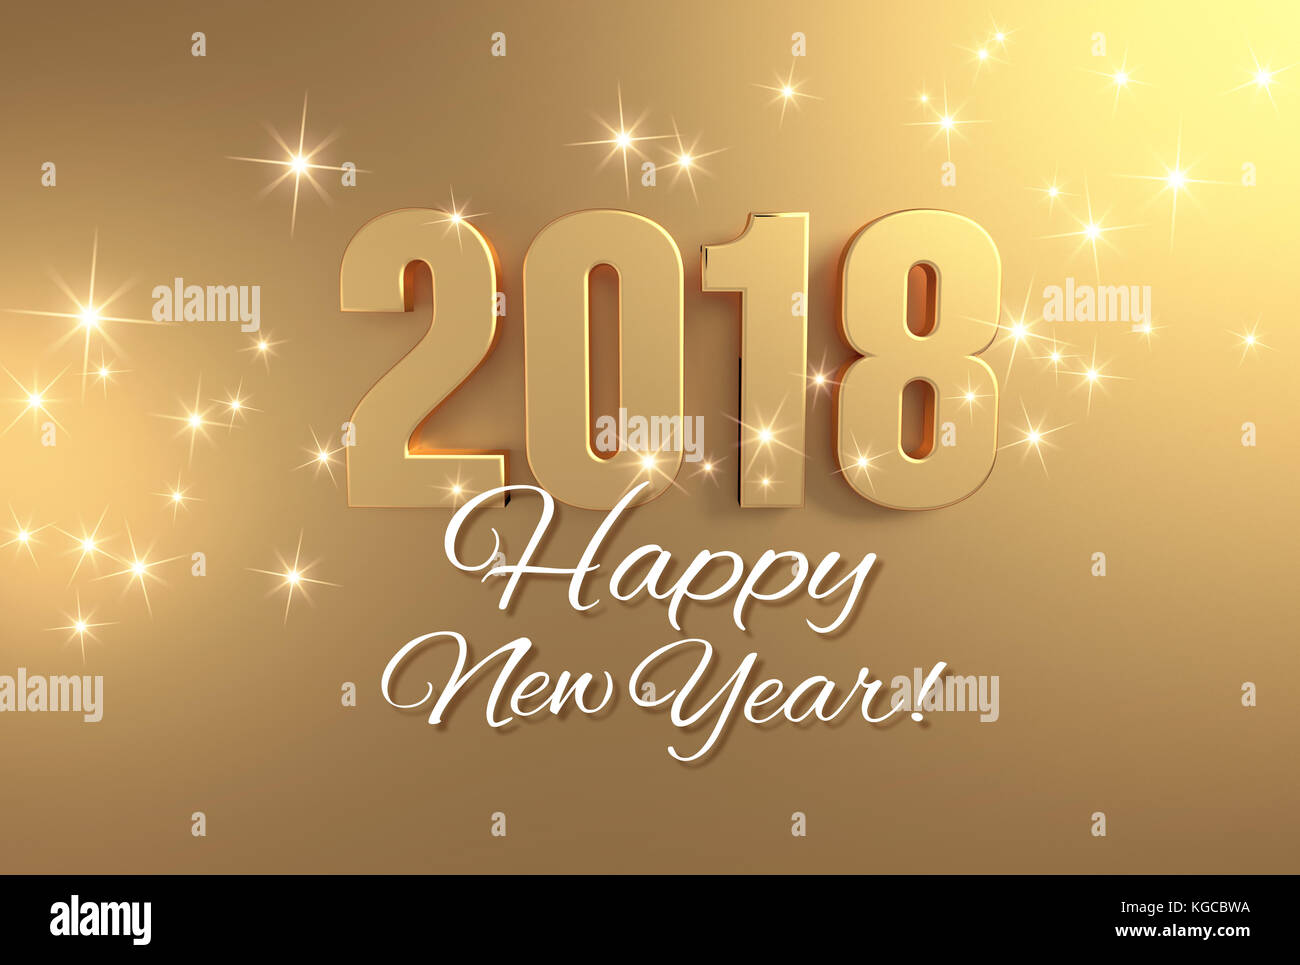 gold 2018 year type and happy new year greetings on a bright golden background 3d illustration